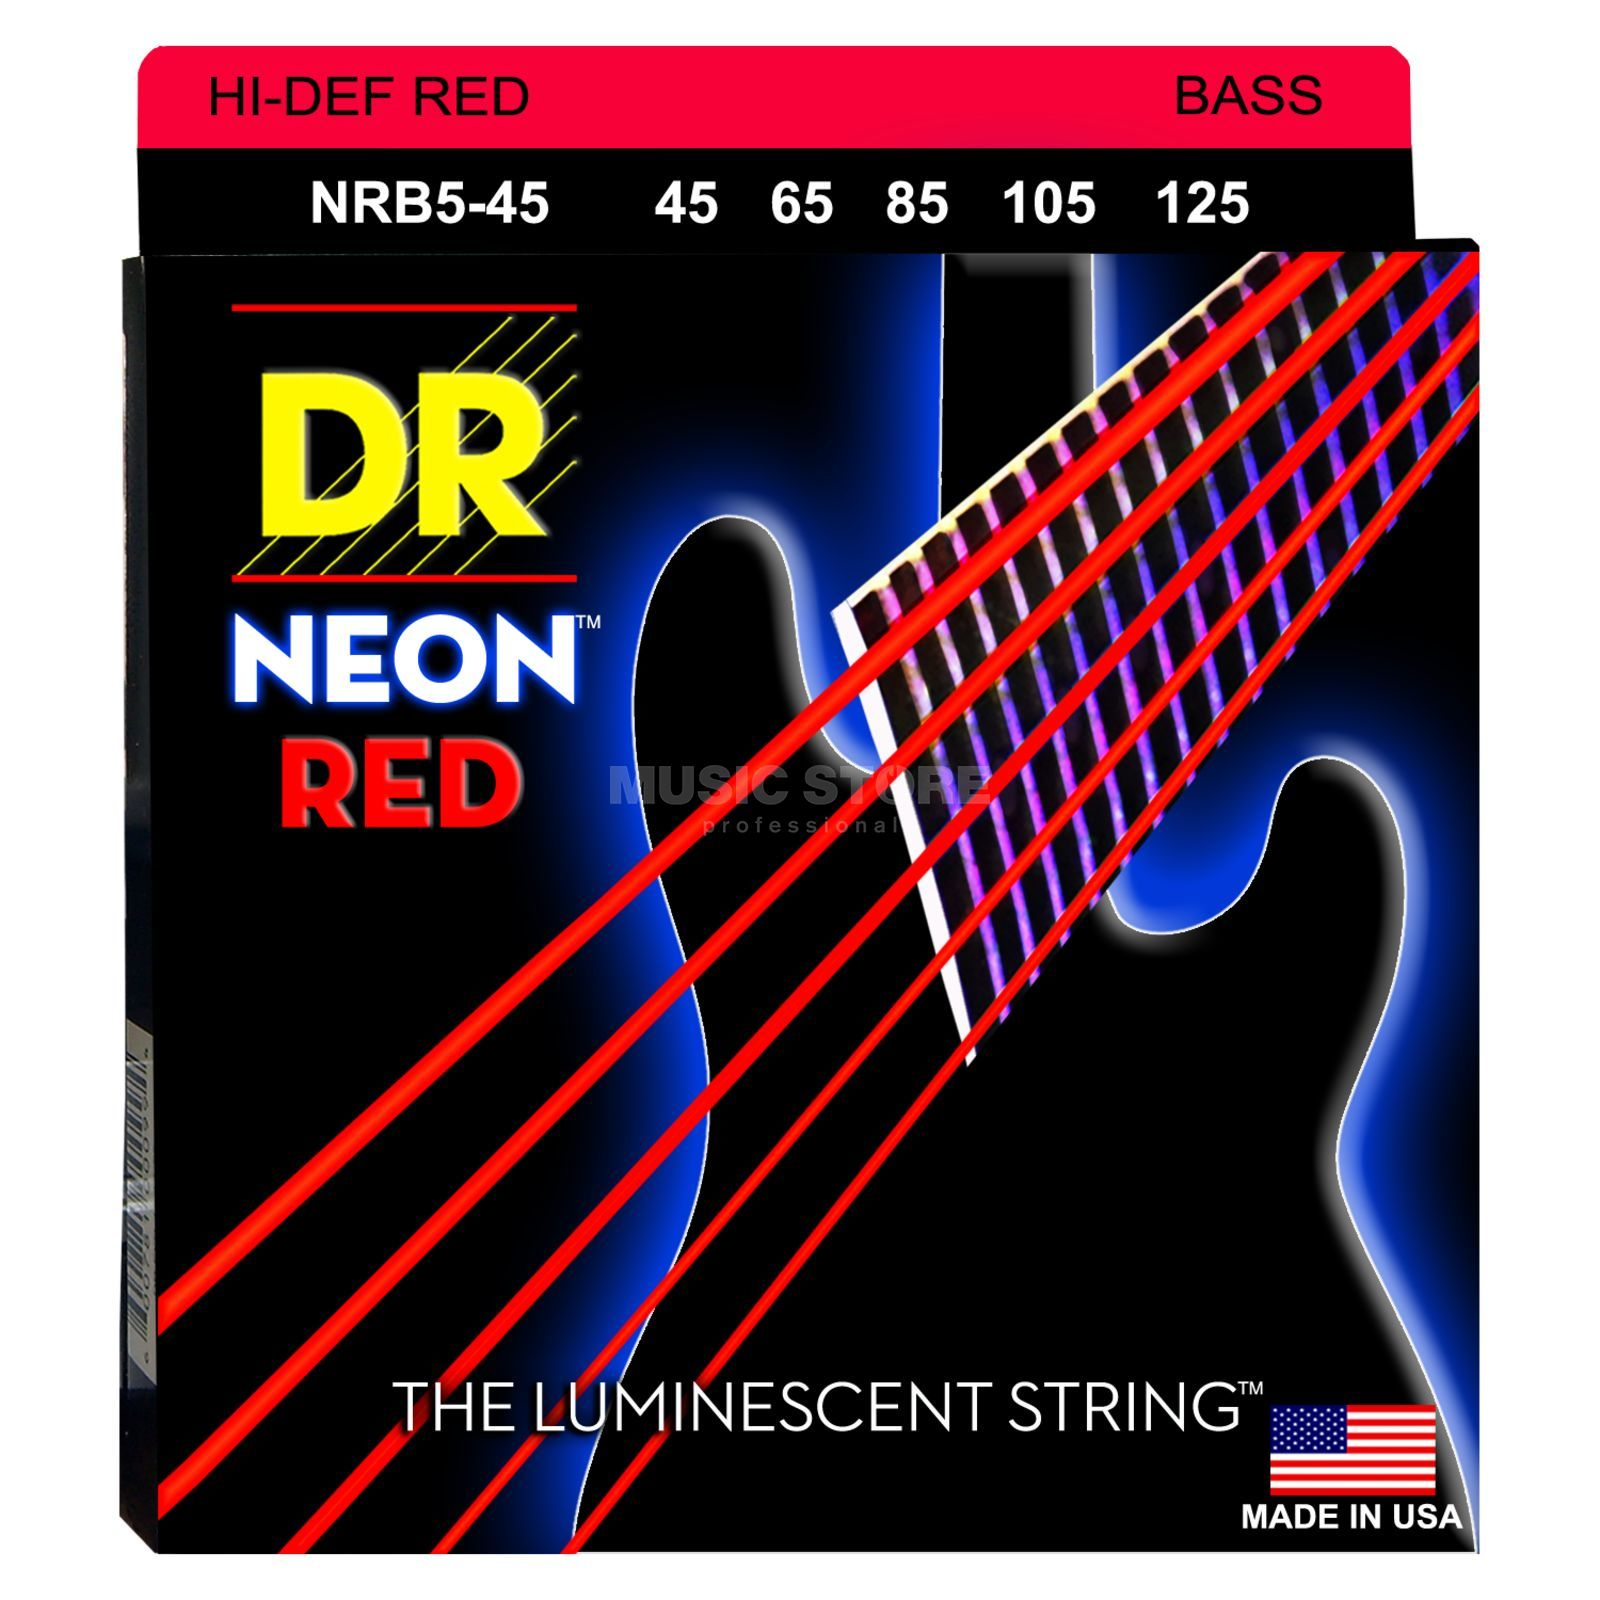 DR 6er Bass 45-125 Hi-Def Neon Red Neon NRB5-45 Product Image